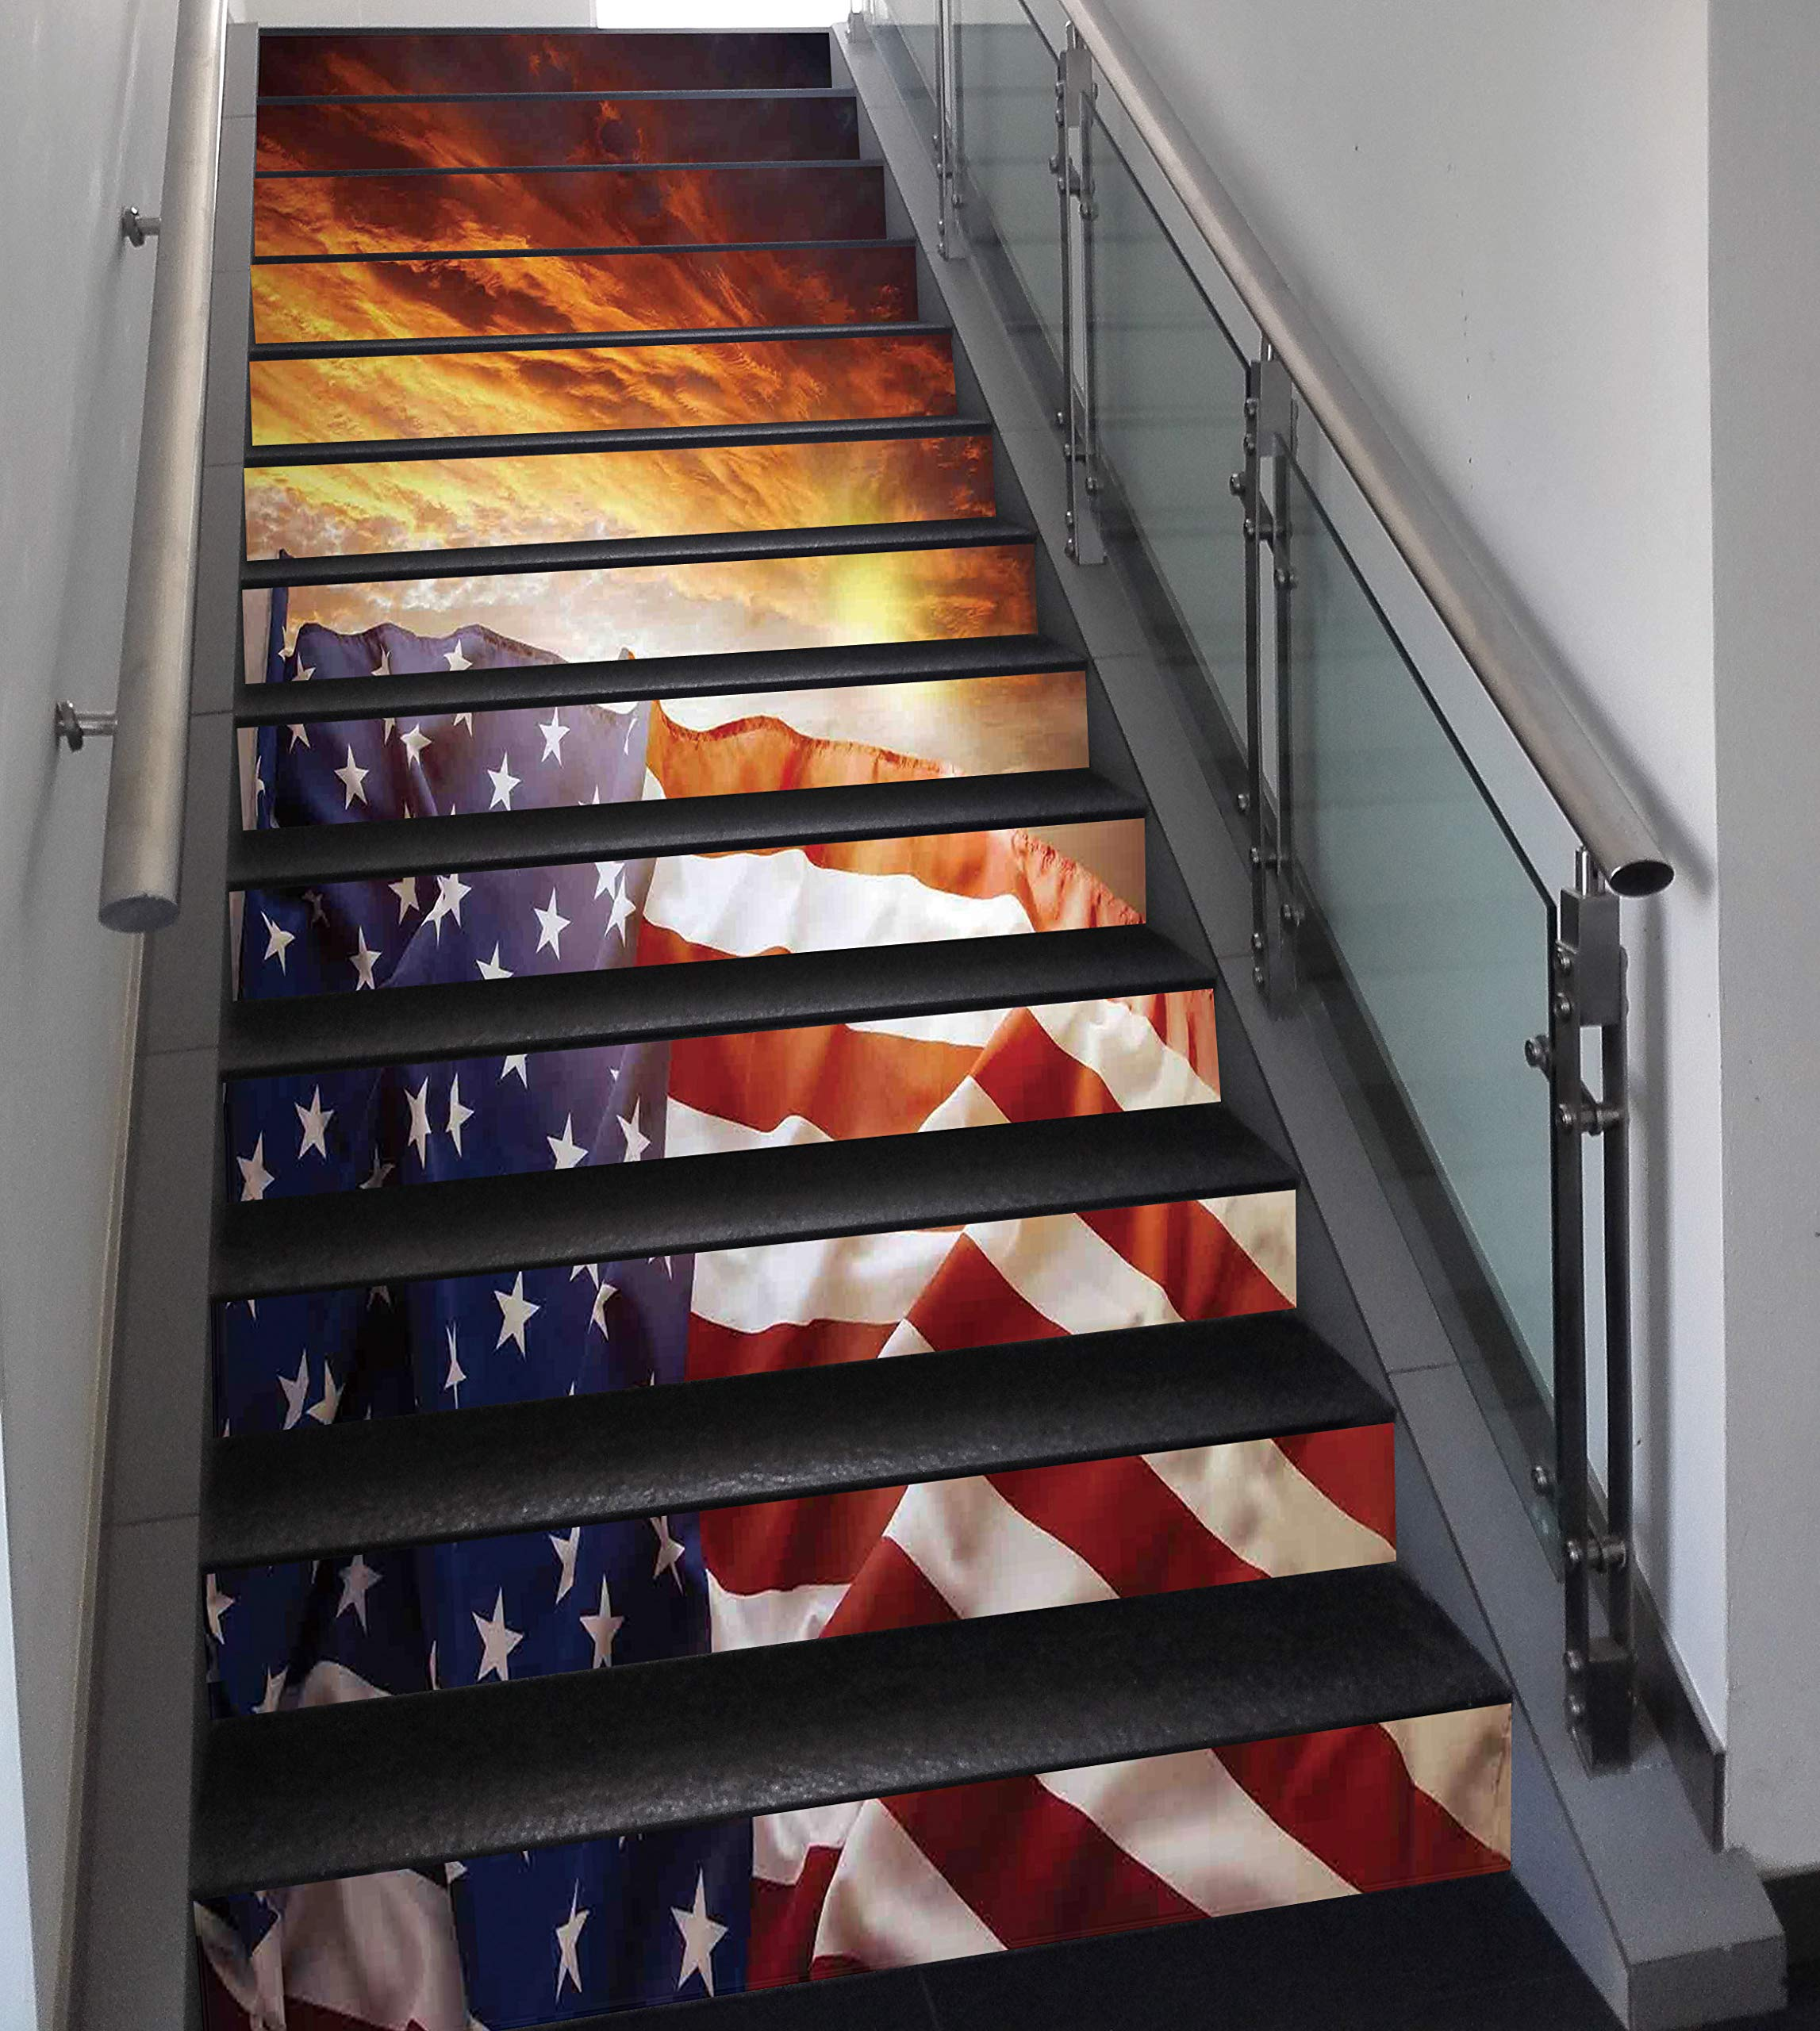 Stair Stickers Wall Stickers,13 PCS Self-adhesive,American Flag Decor,Flag in front of Sunset Sky with Horizon Light America Union Idyllic Photo,Multi,Stair Riser Decal for Living Room, Hall, Kids Roo